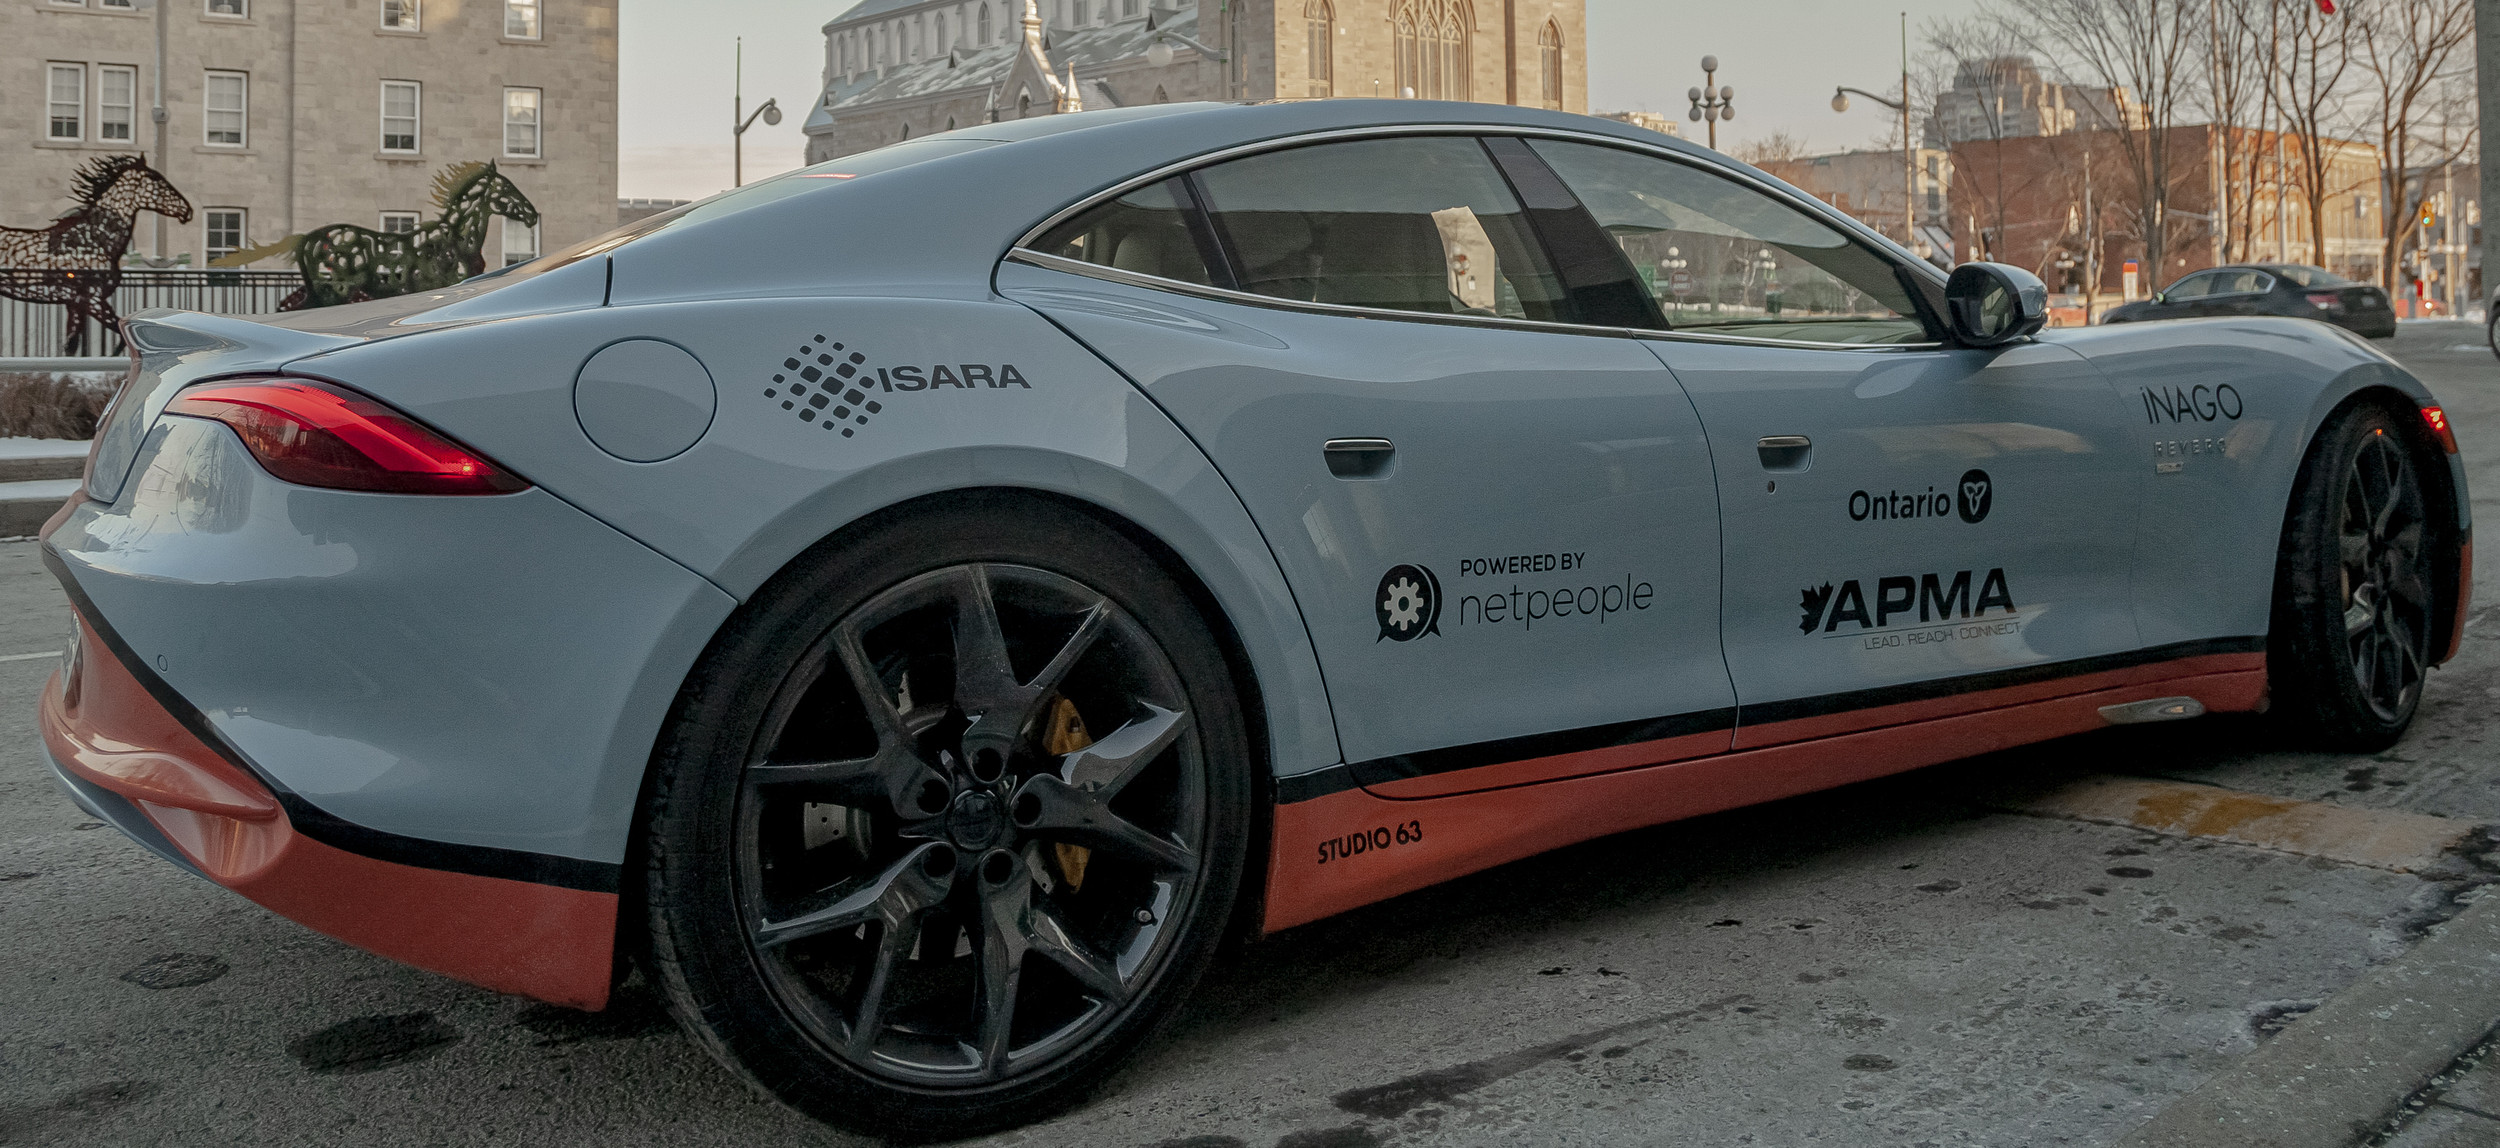 World's First Quantum-Safe Connected Car Secured by ISARA